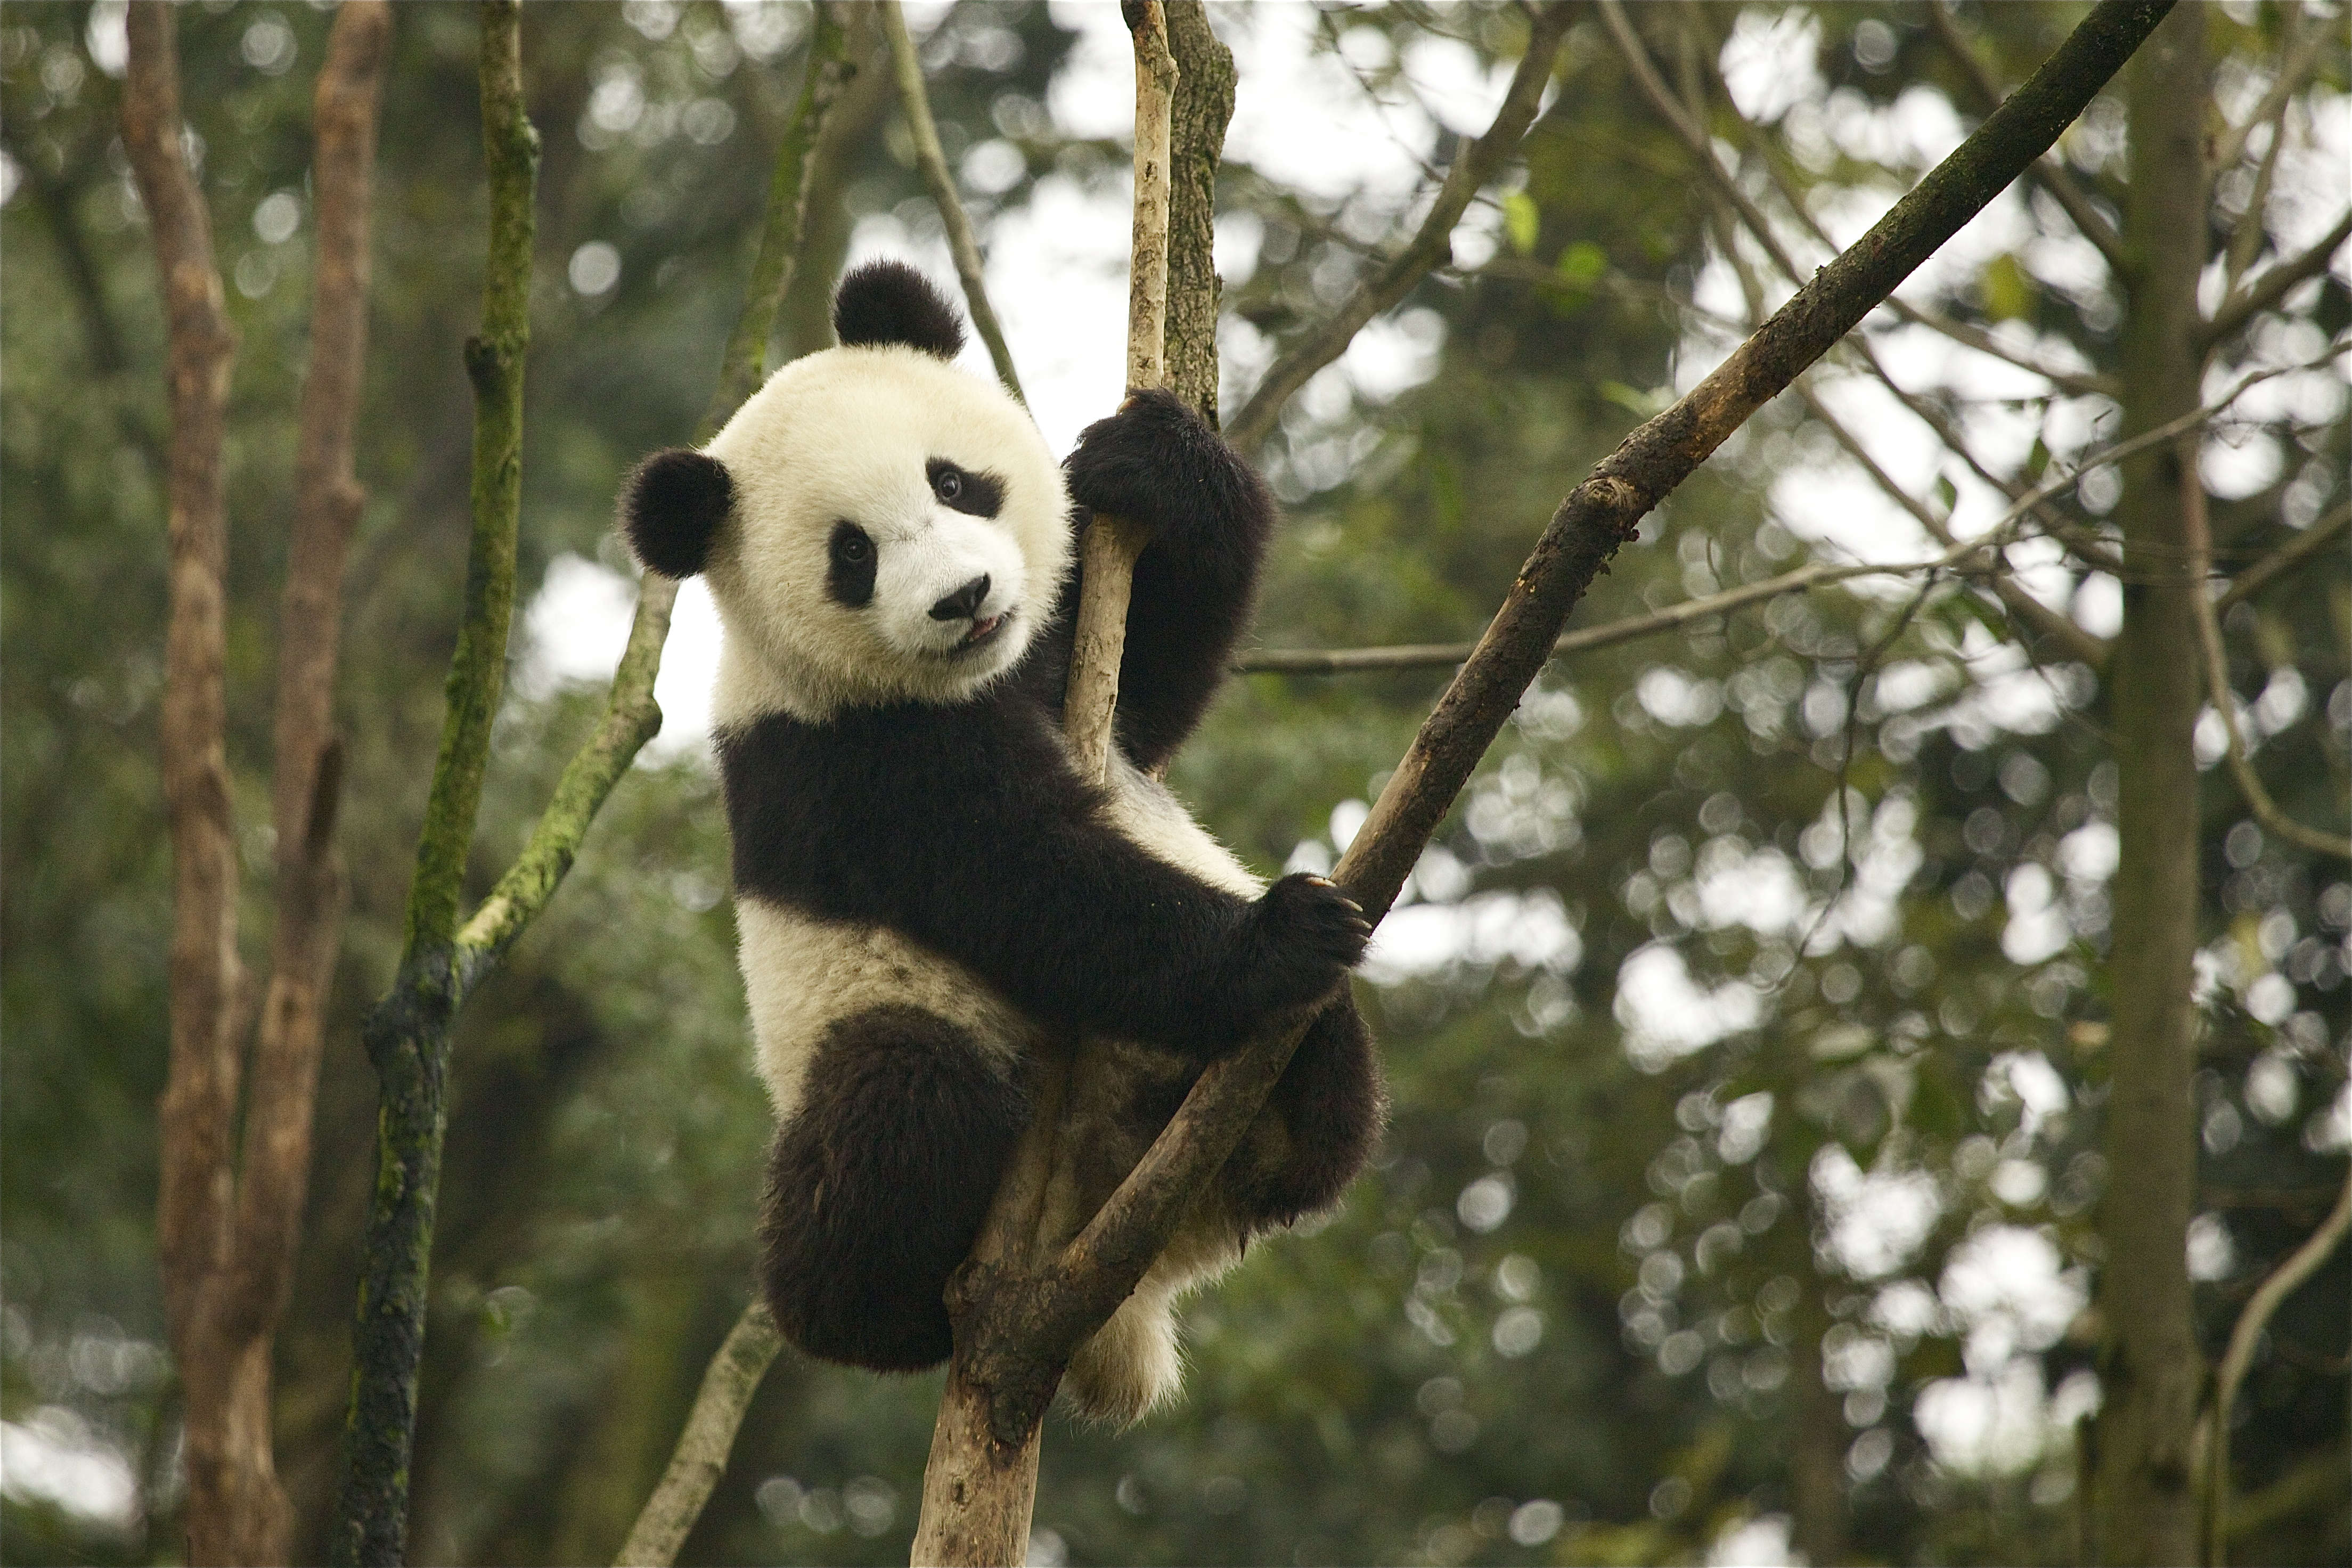 reserves for the protection of the giant panda essay Giant panda no longer  including helping to establish an integrated network of giant panda reserves and wildlife corridors to connect isolated panda populations.